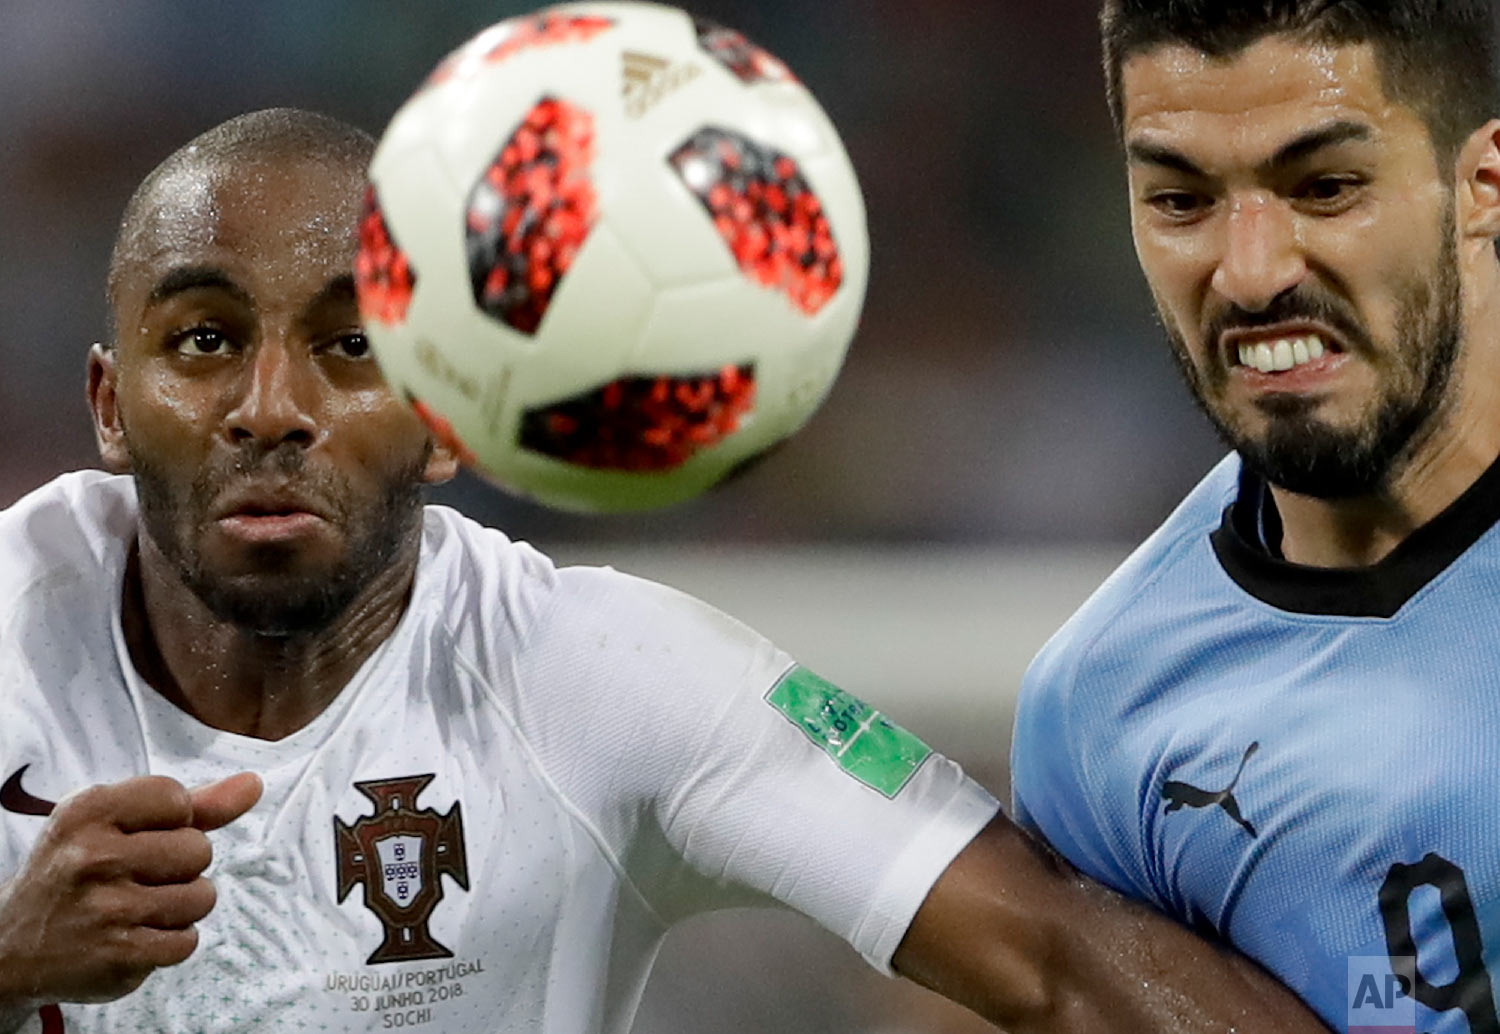 Uruguay's Luis Suarez, right, challenges for the ball with Portugal's Ricardo during the round of 16 match between Uruguay and Portugal at the 2018 soccer World Cup at the Fisht Stadium in Sochi, Russia on June 30, 2018. (AP Photo/Andre Penner)